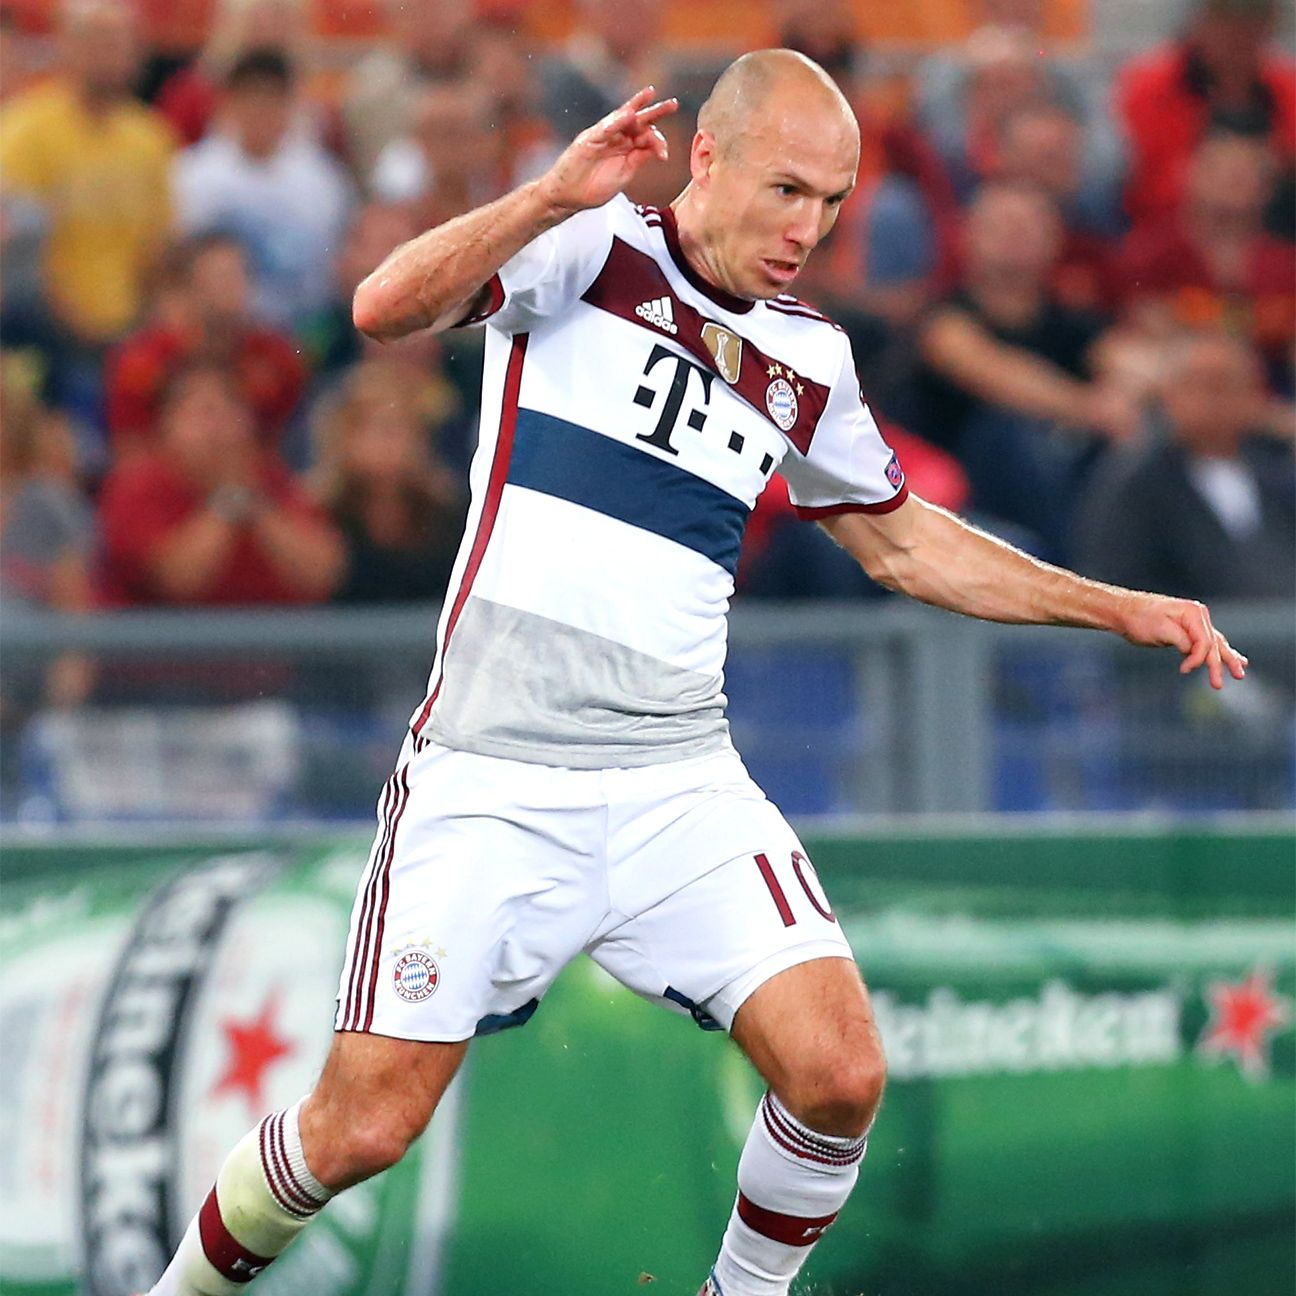 With Arjen Robben sidelined, Bayern were unable to find the back of the net versus Gladbach.